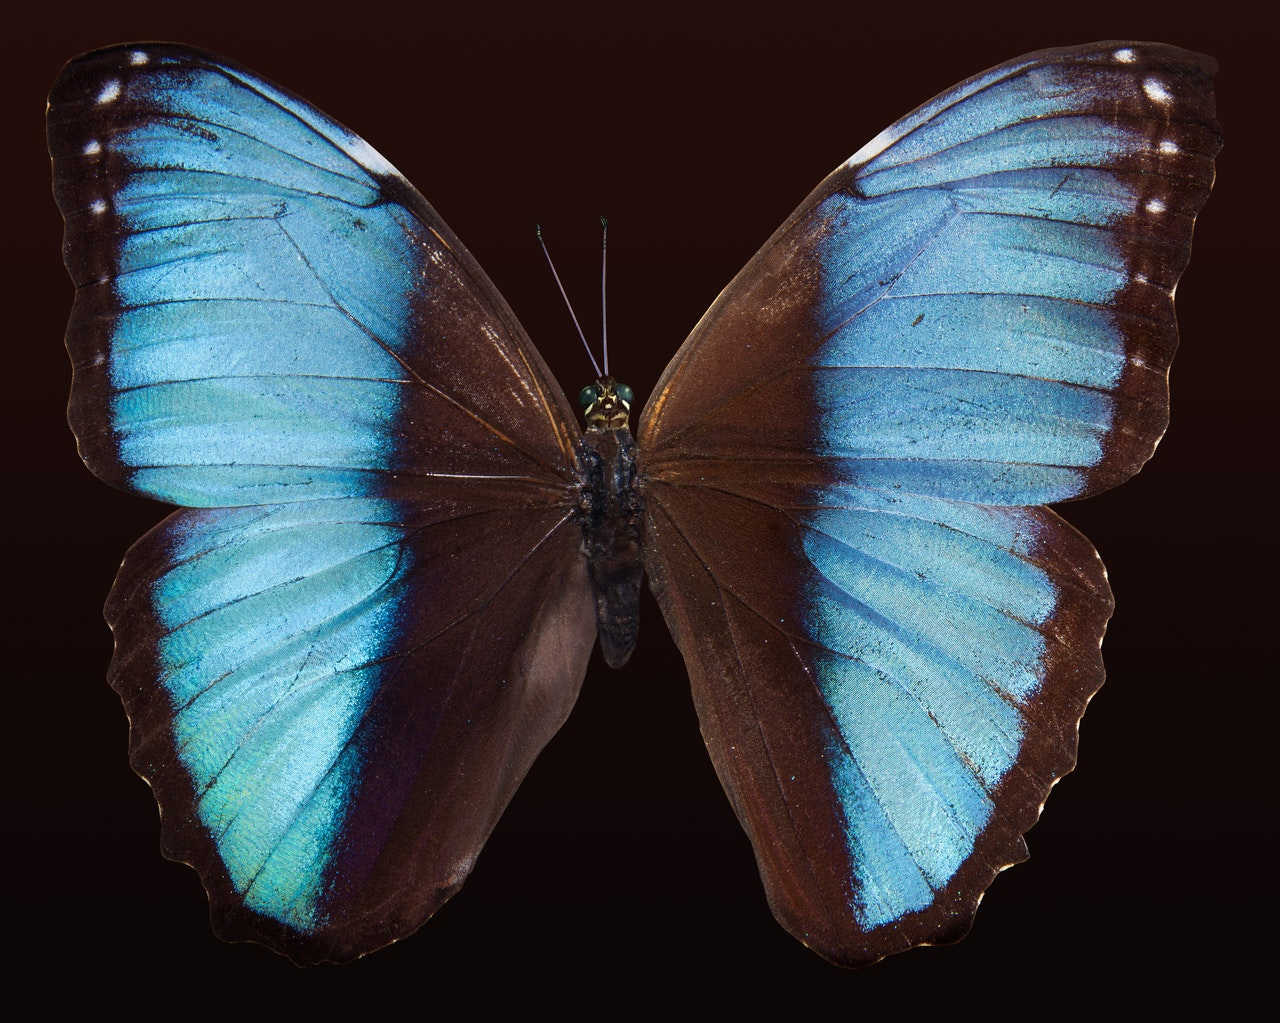 Image of a Butterfly which is an analogy for the Hierarchy of Social Development